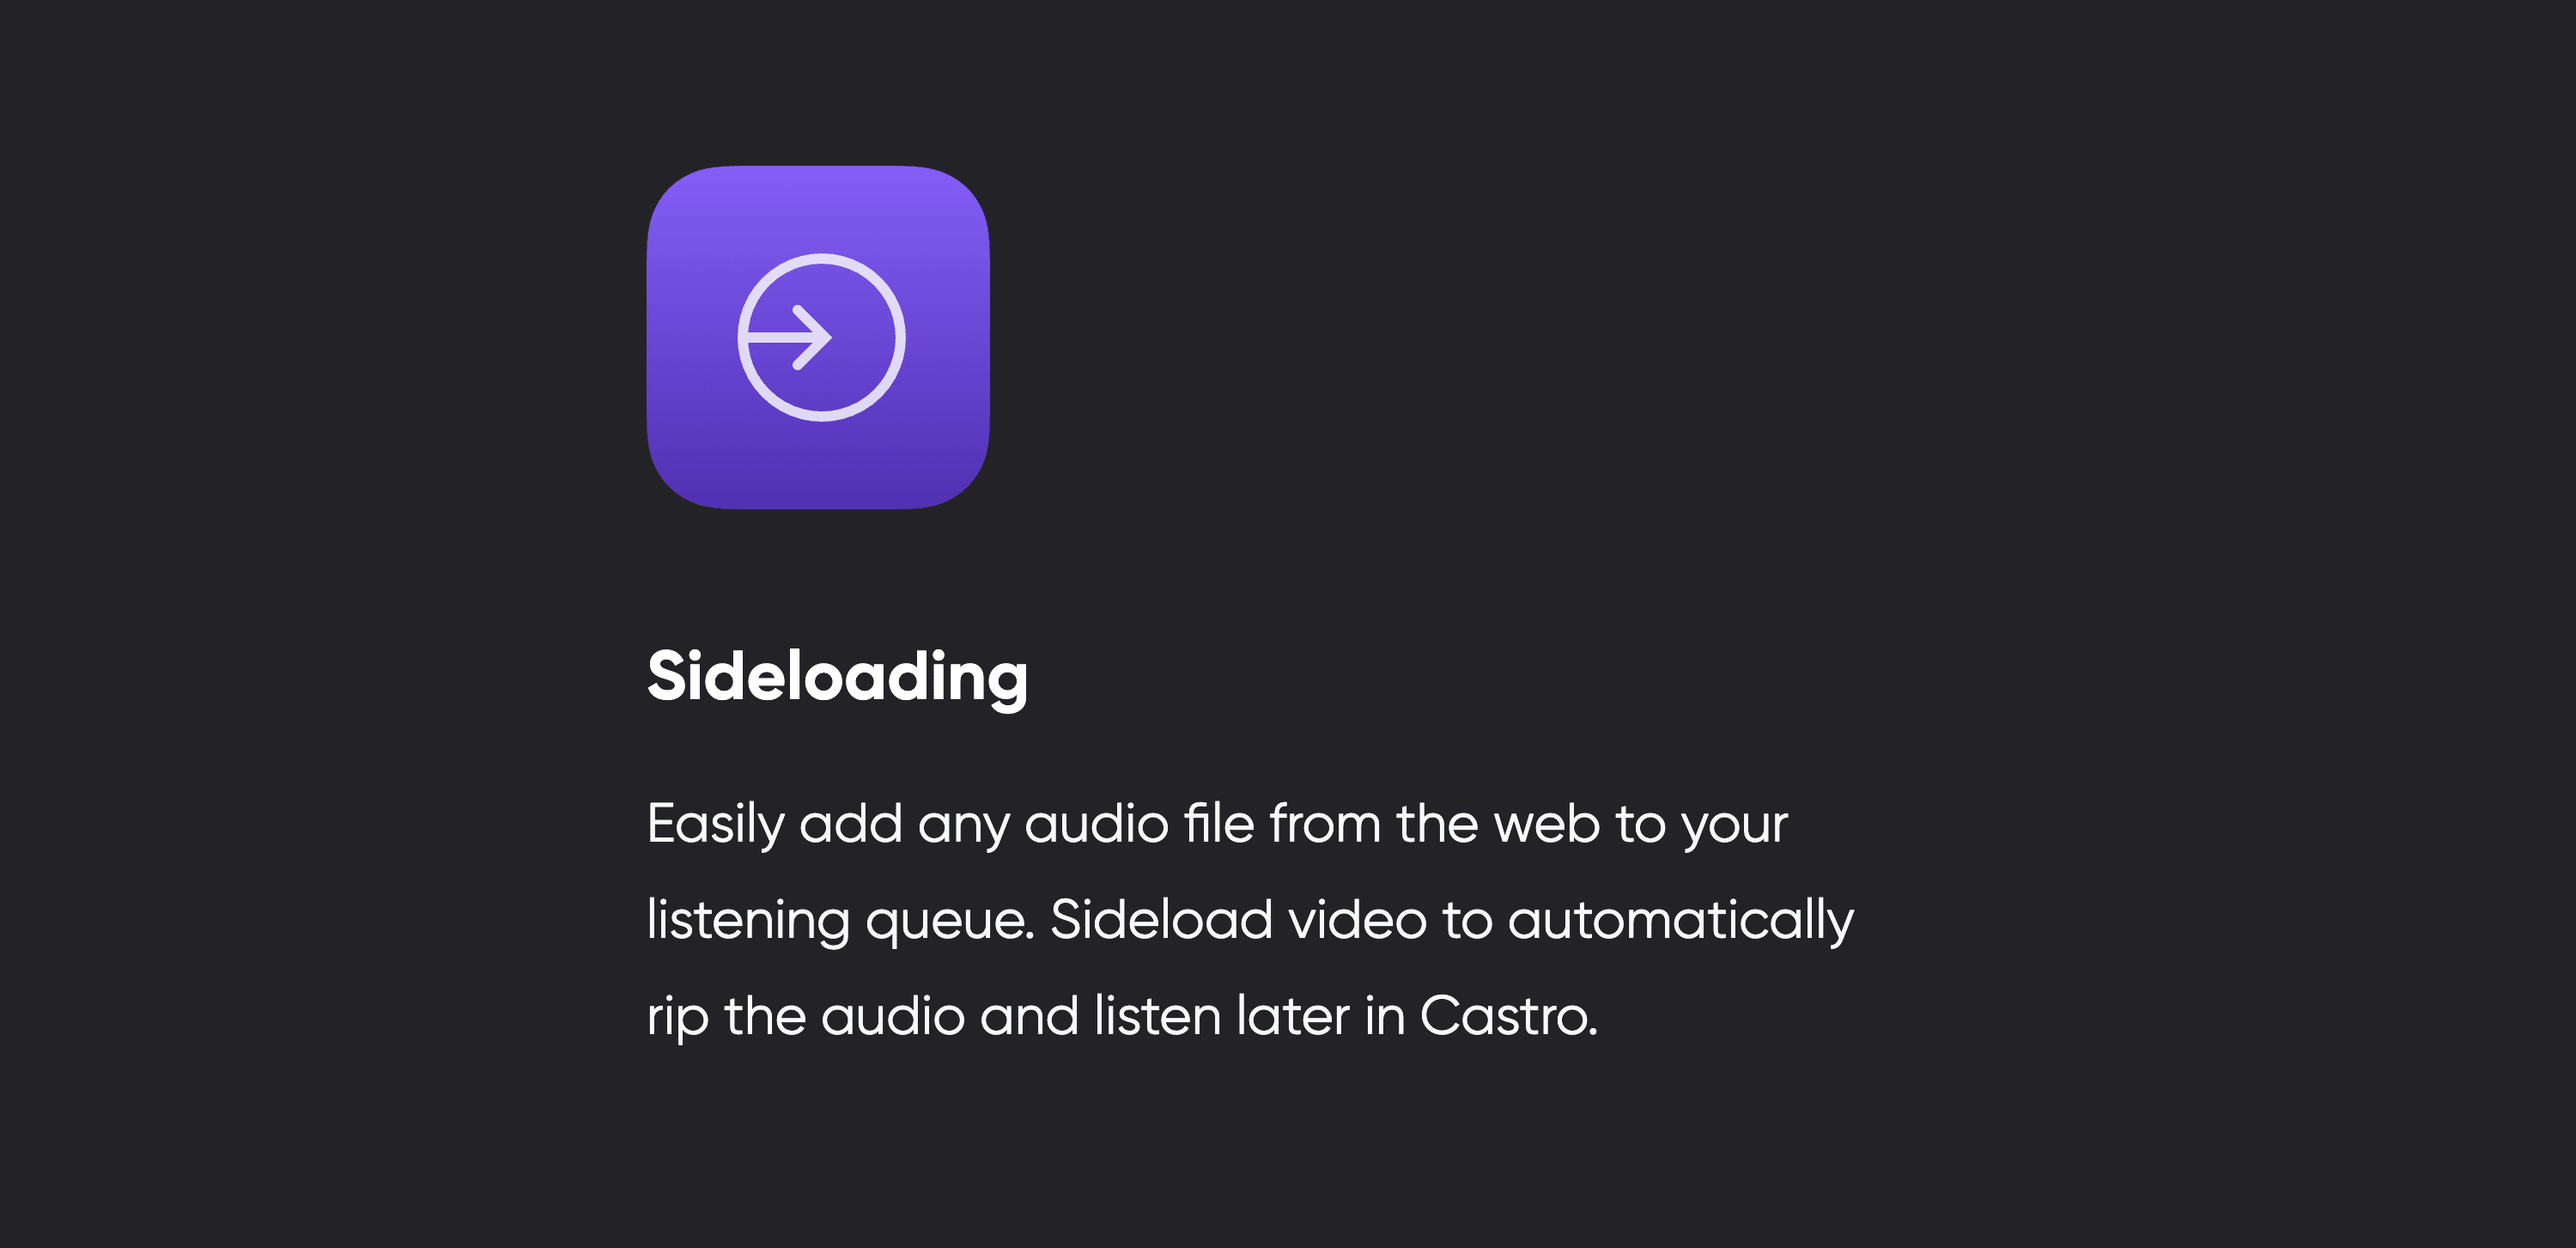 Castro's sideloading feature